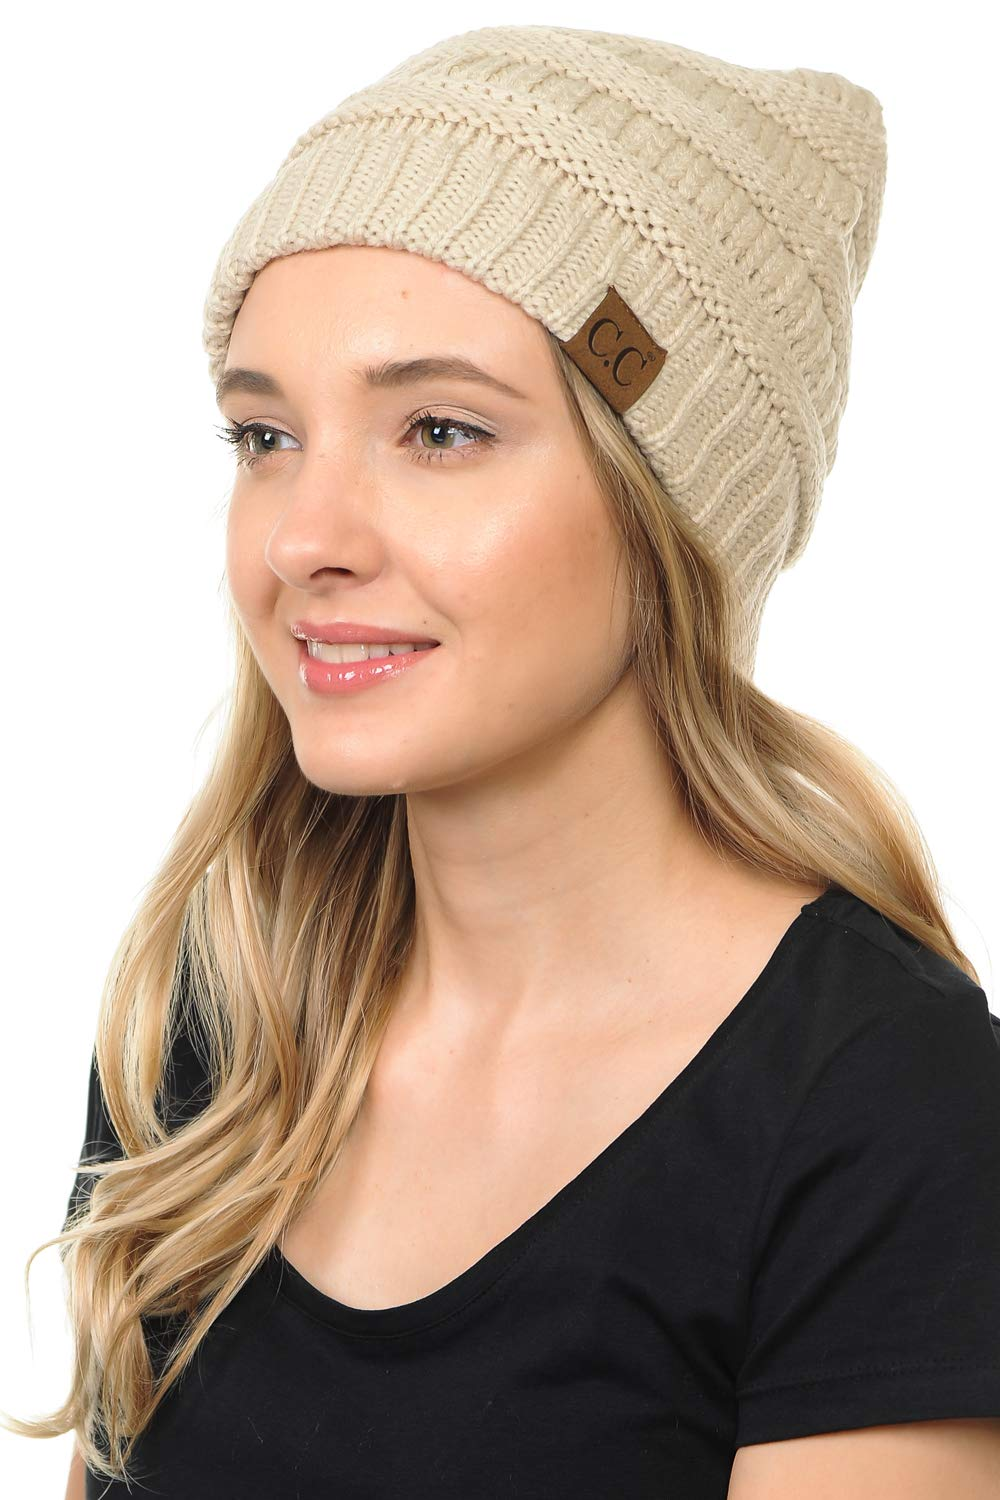 BYSUMMER C.C.Soft Cable Knit Warm Fuzzy Lined Slouchy Beanie Winter Hat